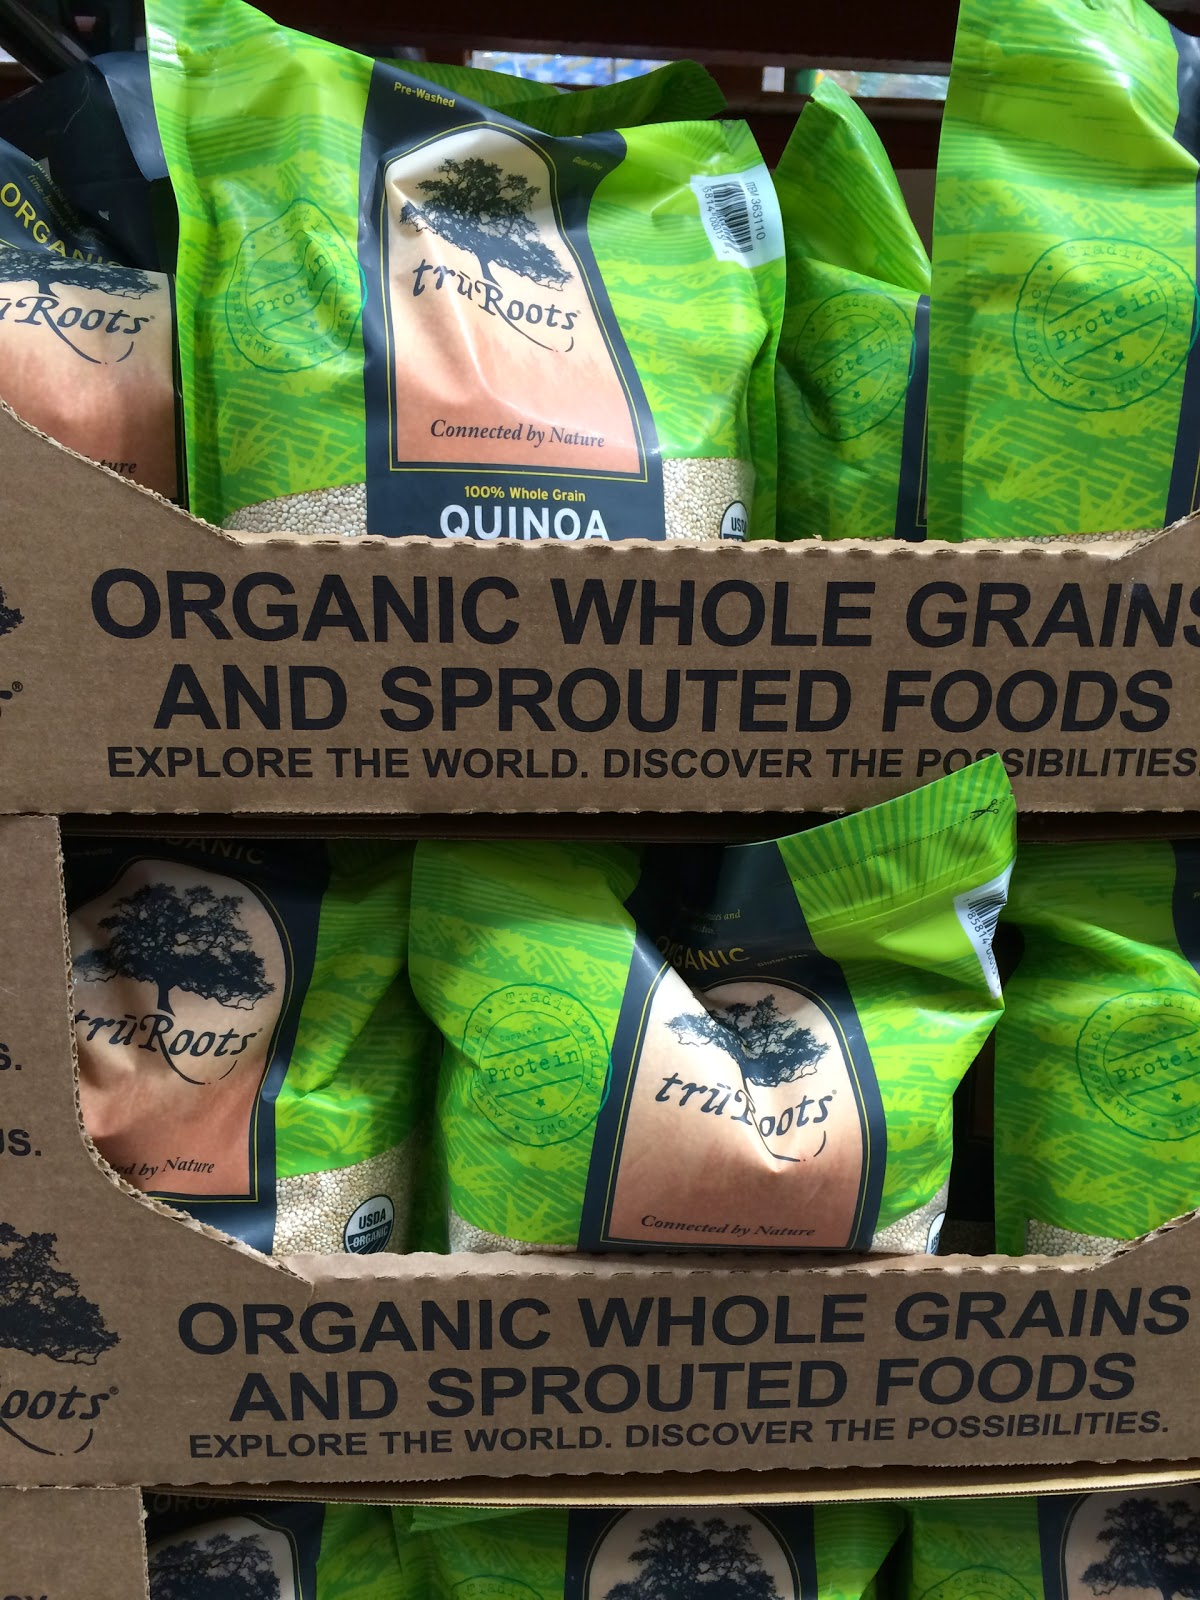 do you really know what you re eating costco coupons make good four pound bags of tru roots organic 100% whole grain quinoa 18 99 returned to the shelves of costco whole in hackensack after an absence of a few